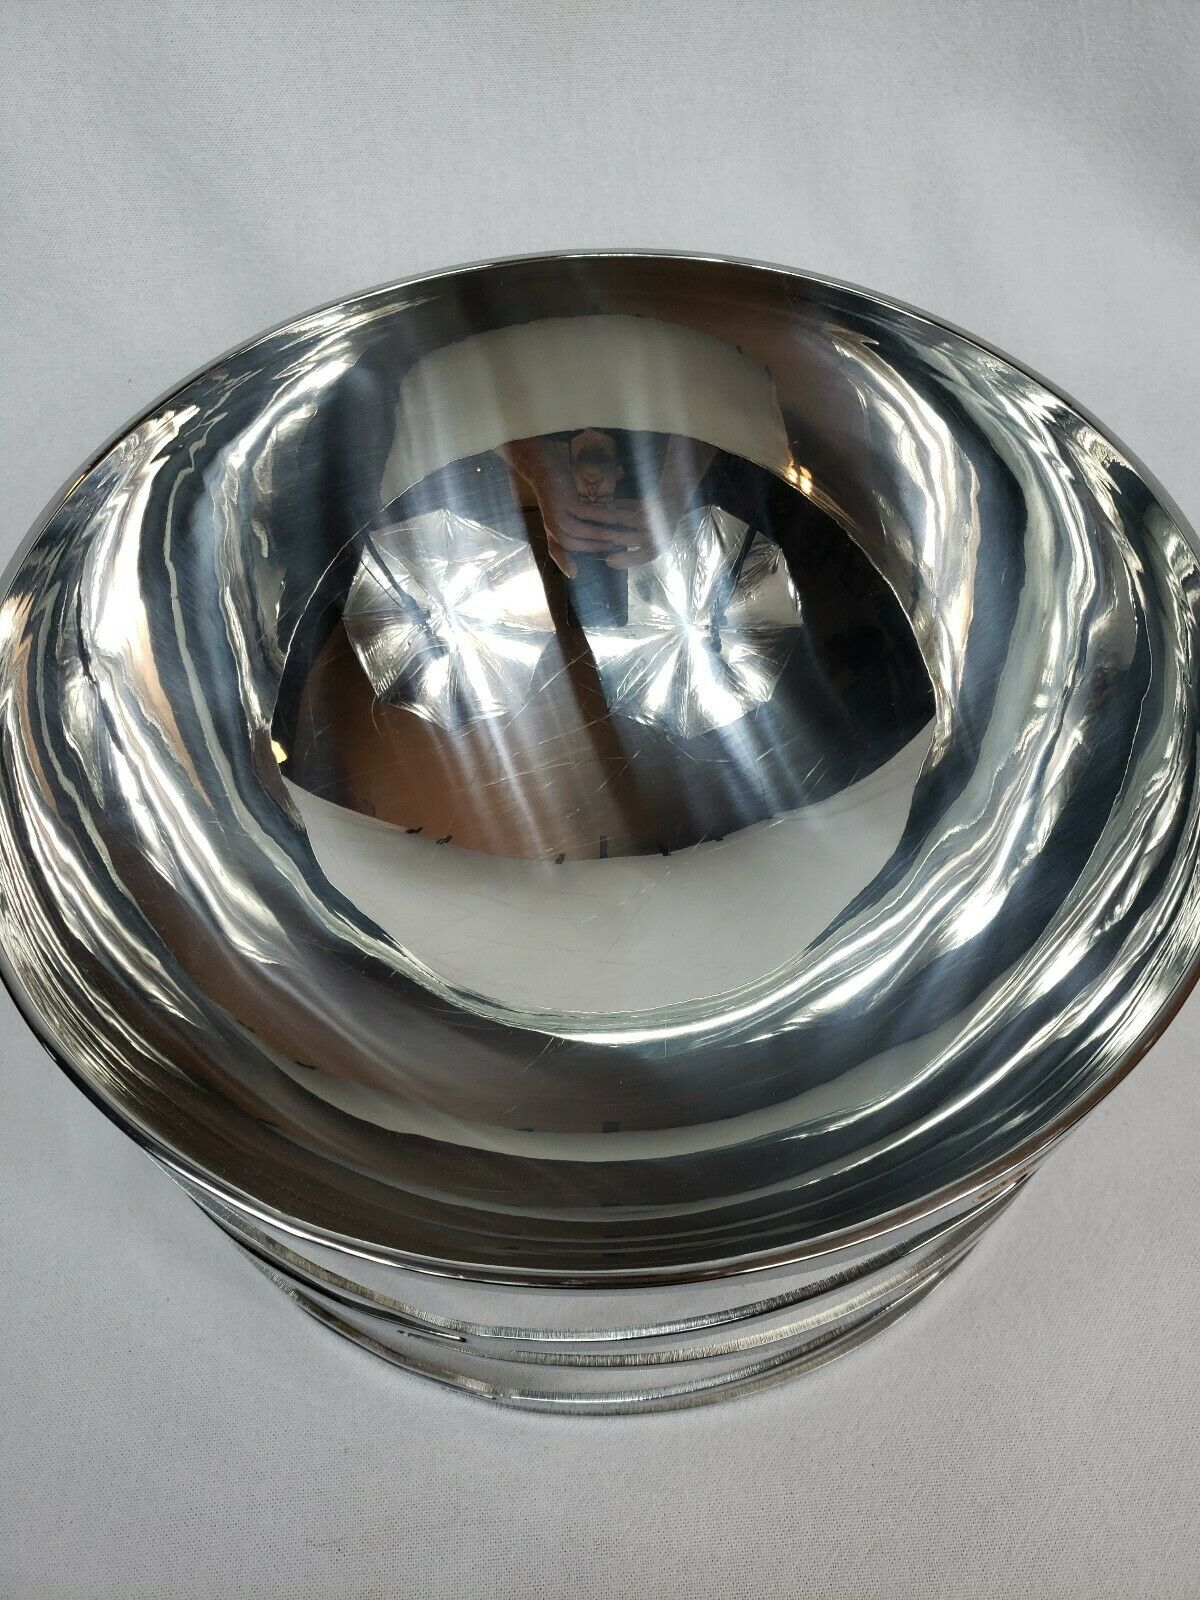 STUNNING RIVA TRAMA COLLECTION COLLECTION COLLECTION SALAD BOWL 10 1 2  RARE JACQELINE TERPINS a5500f